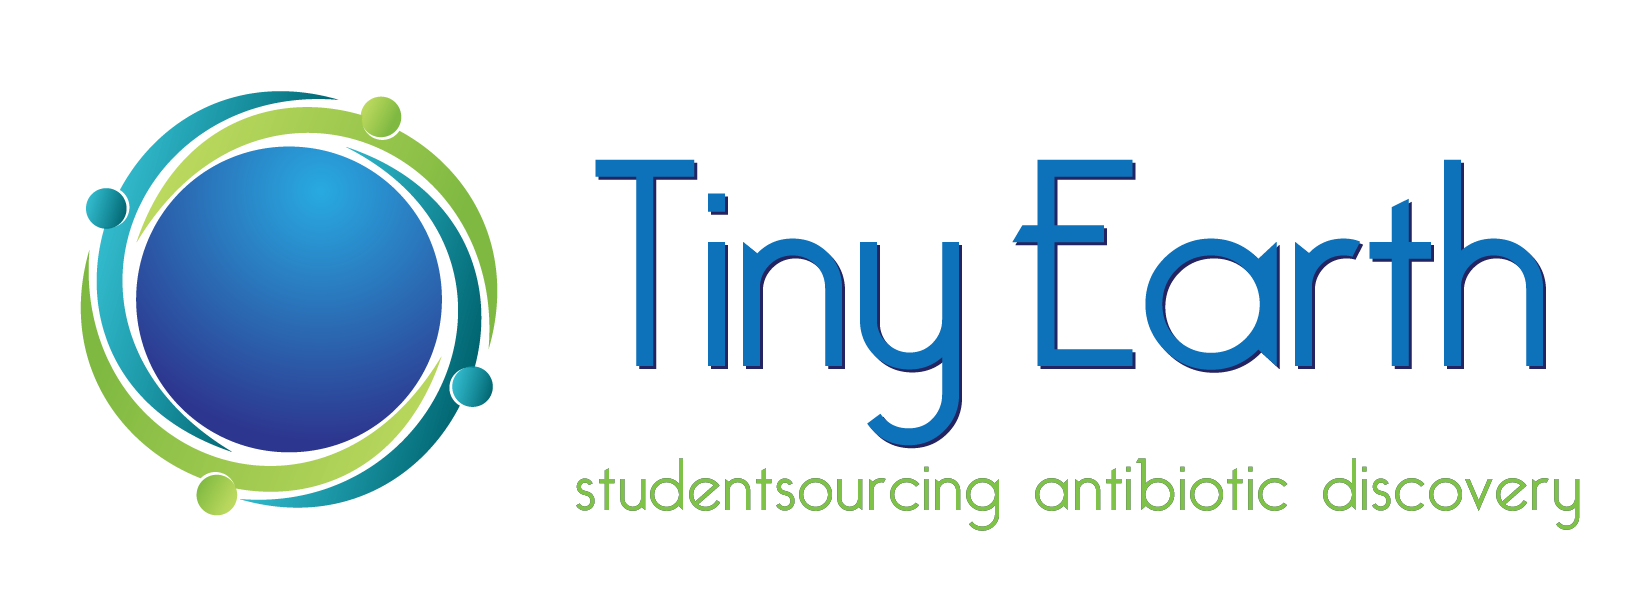 tiny earth: student sourcing antibiotic discovery